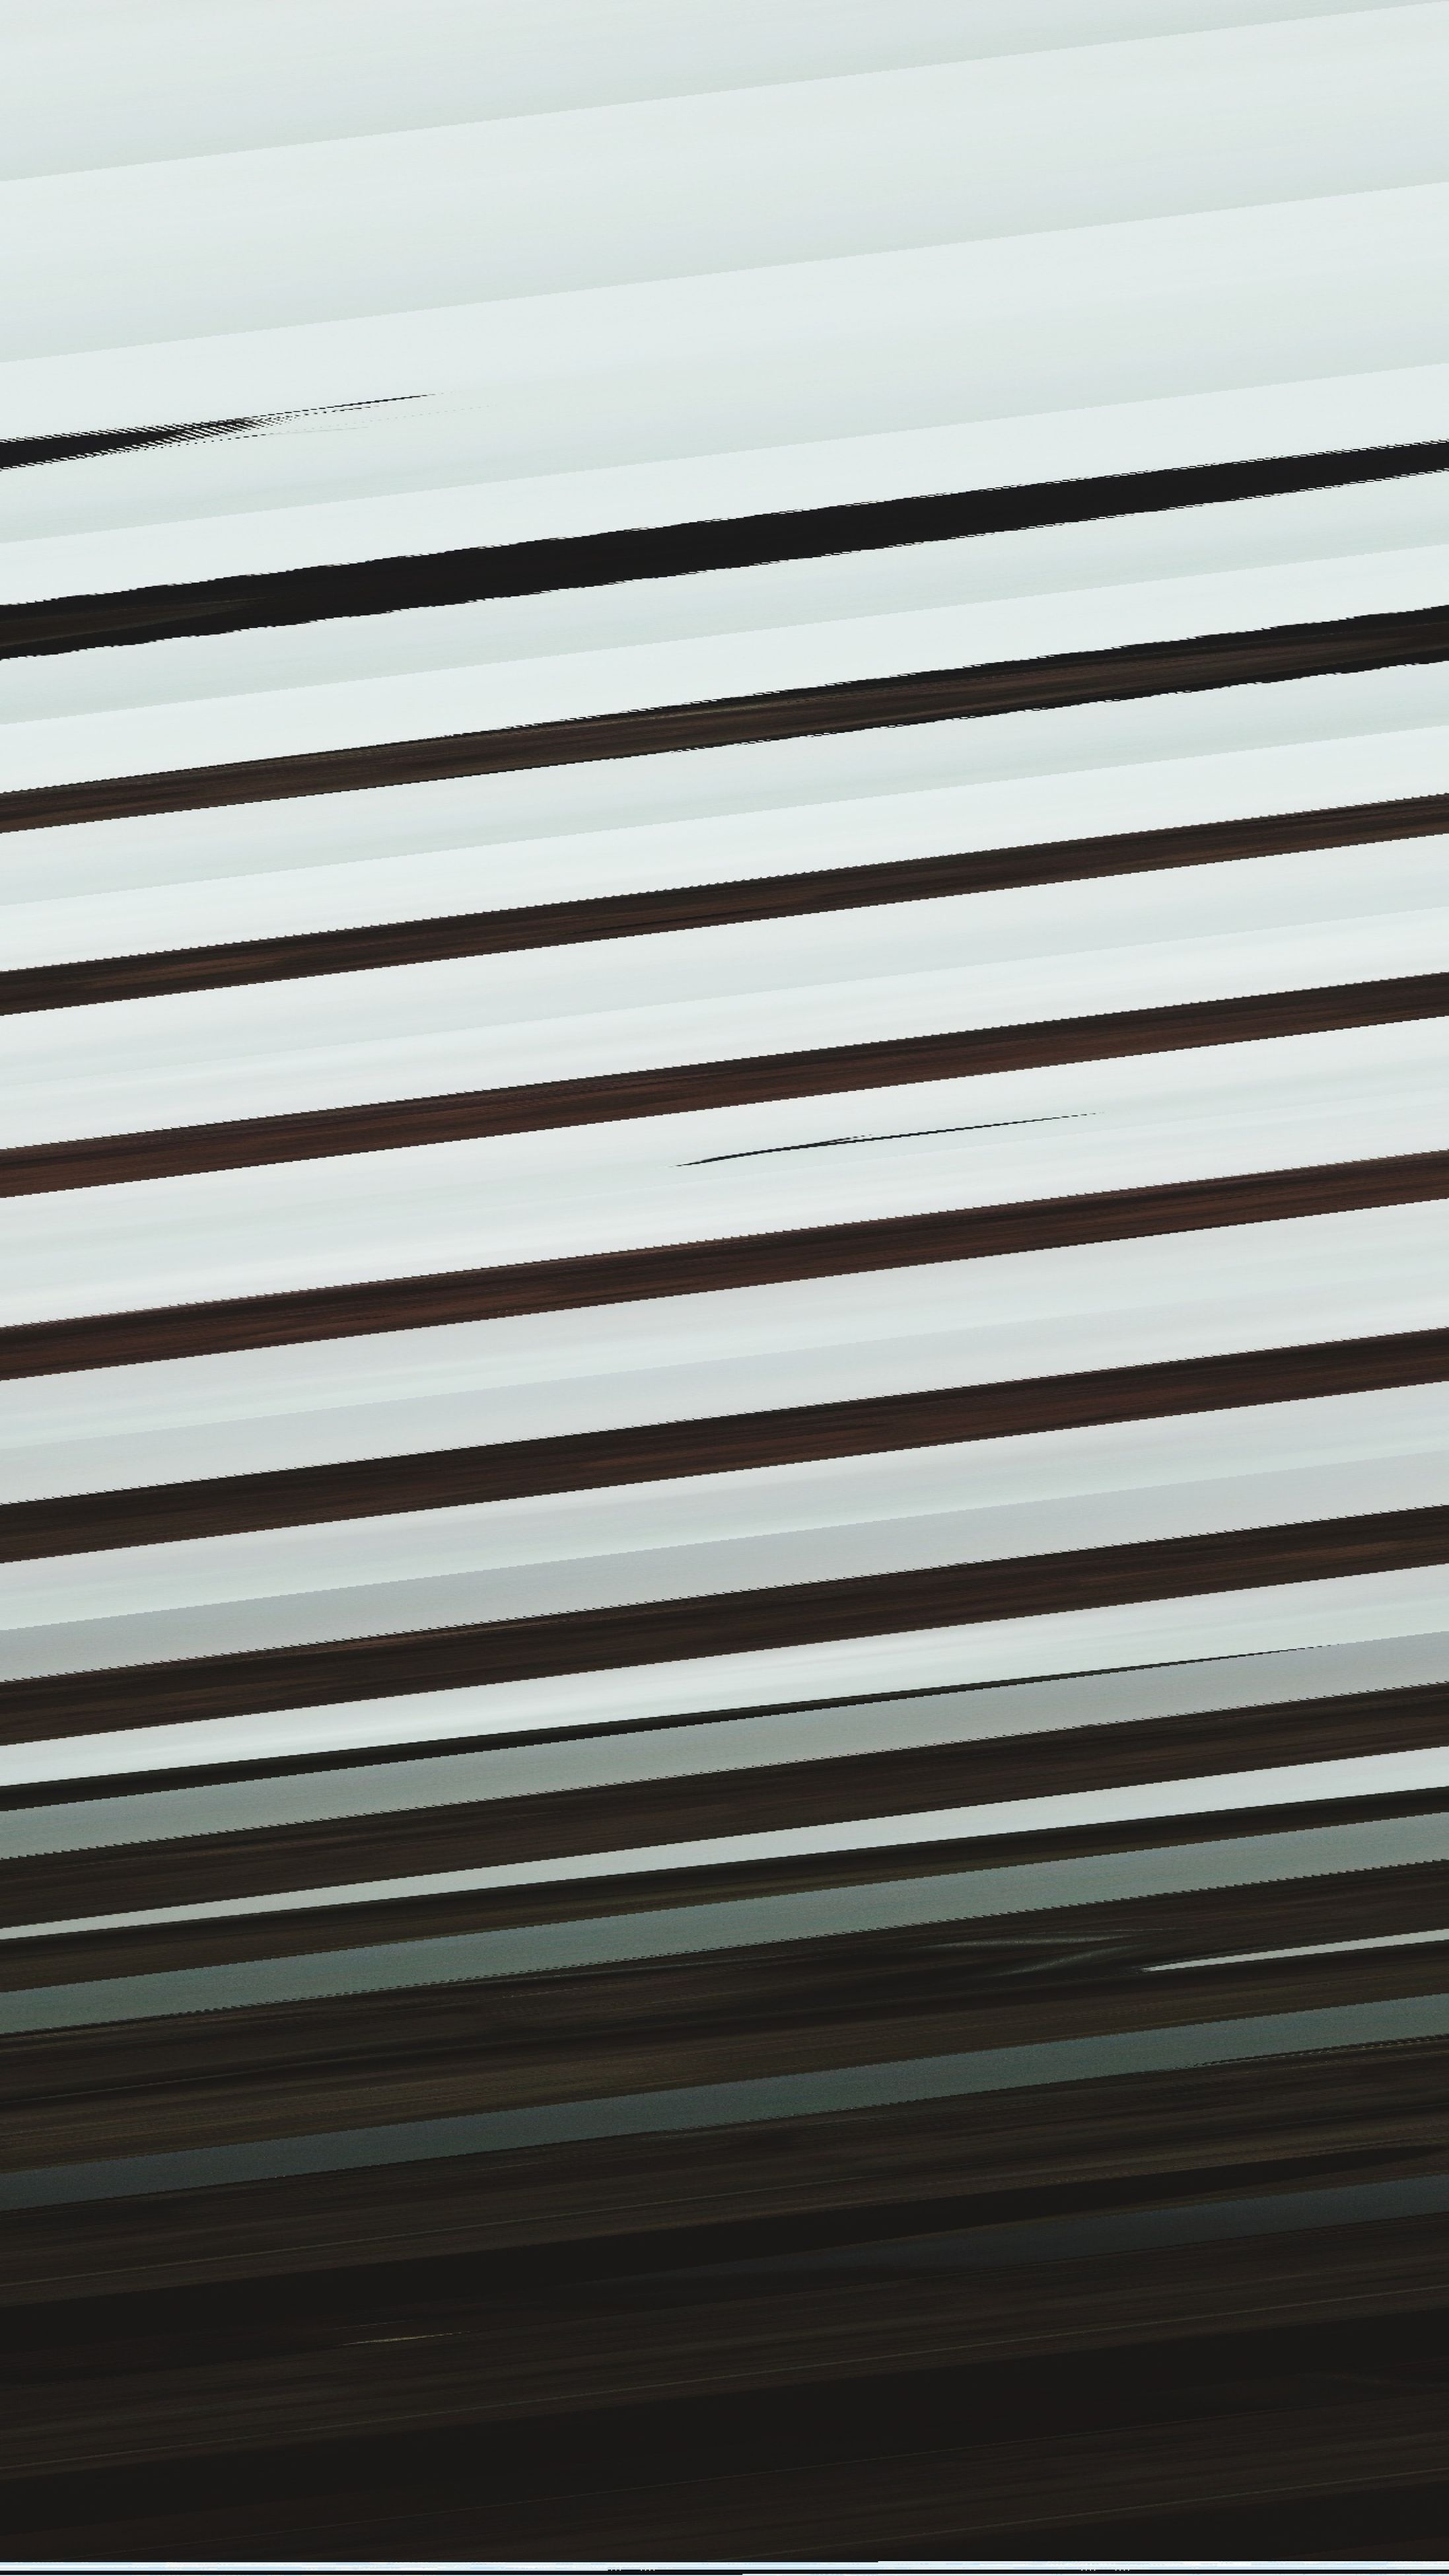 full frame, backgrounds, pattern, no people, close-up, day, corrugated iron, indoors